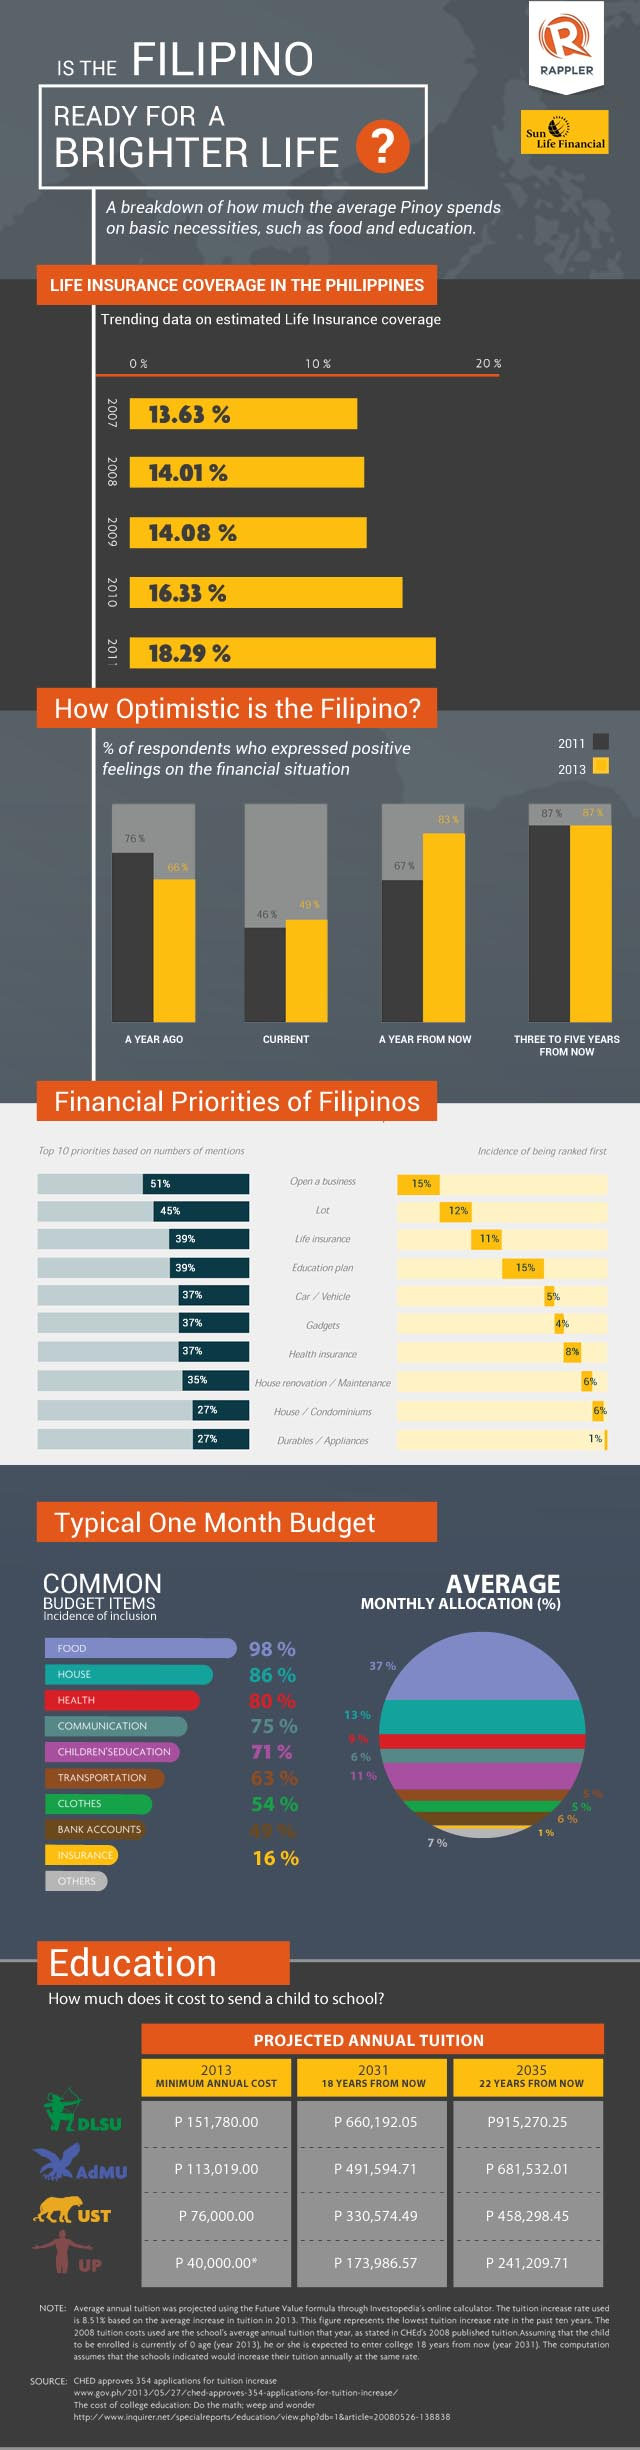 Infographic Are Filipinos Ready For A Brighter Life